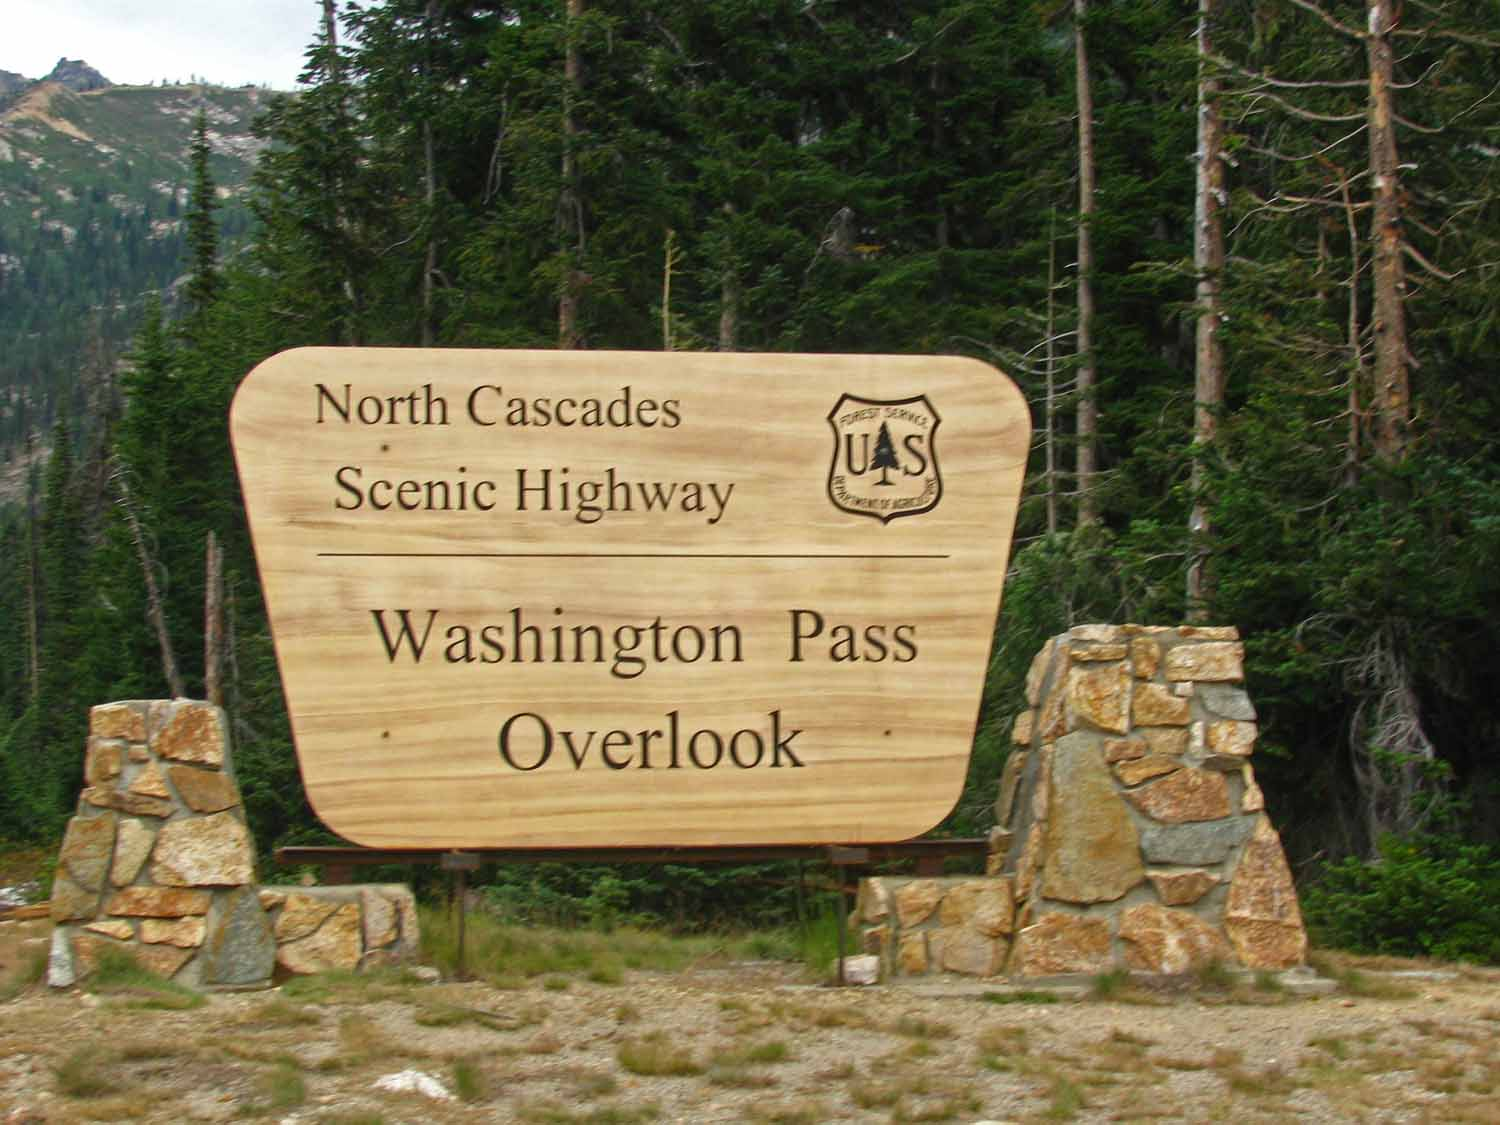 Washington Pass is an impressive stop